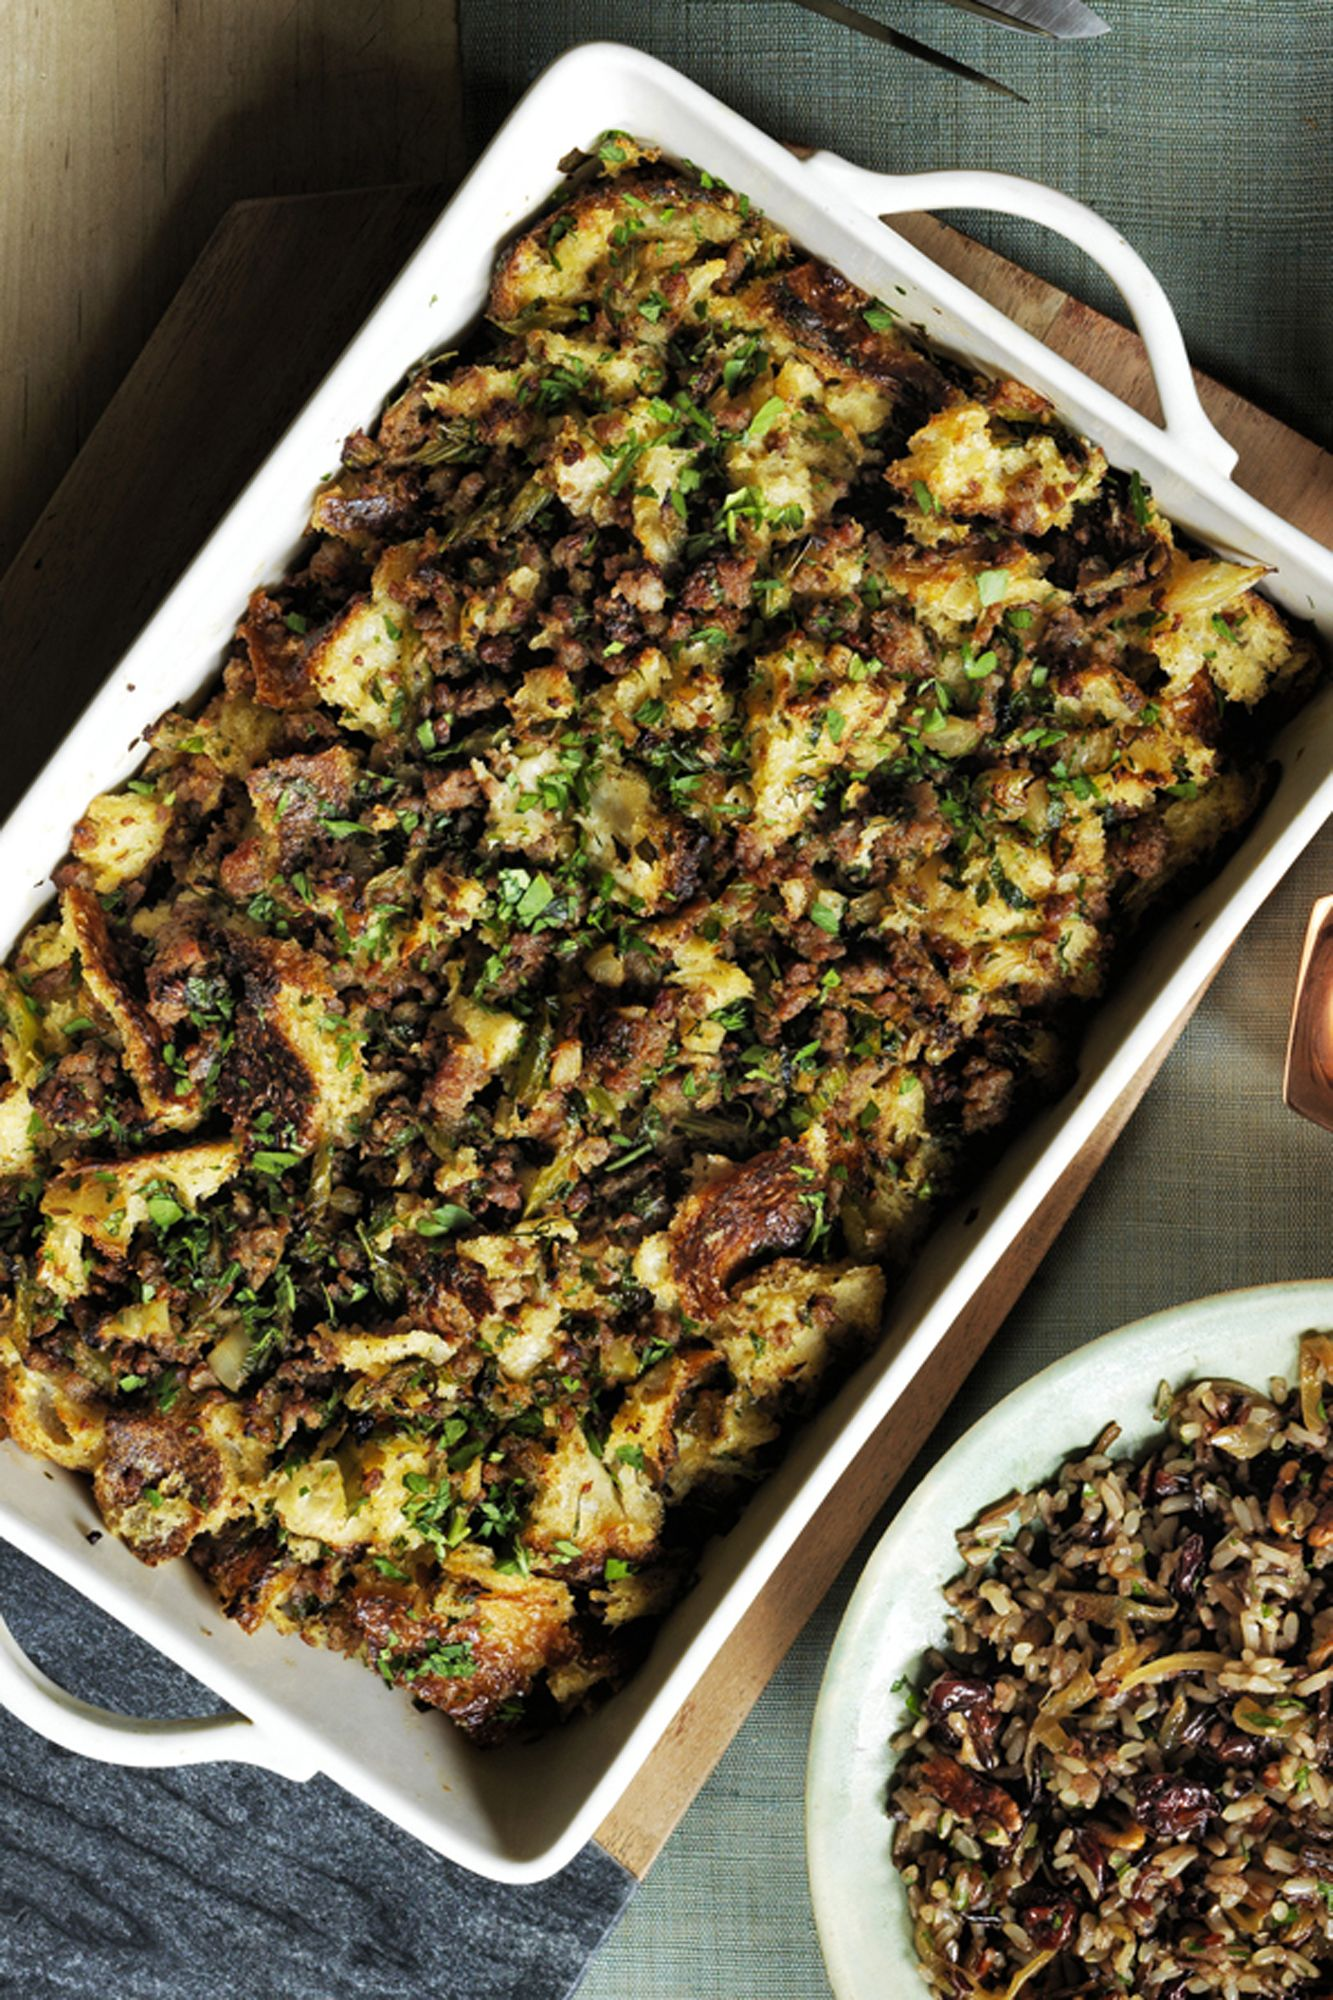 Sourdough Stuffing with Sausage and Herbs